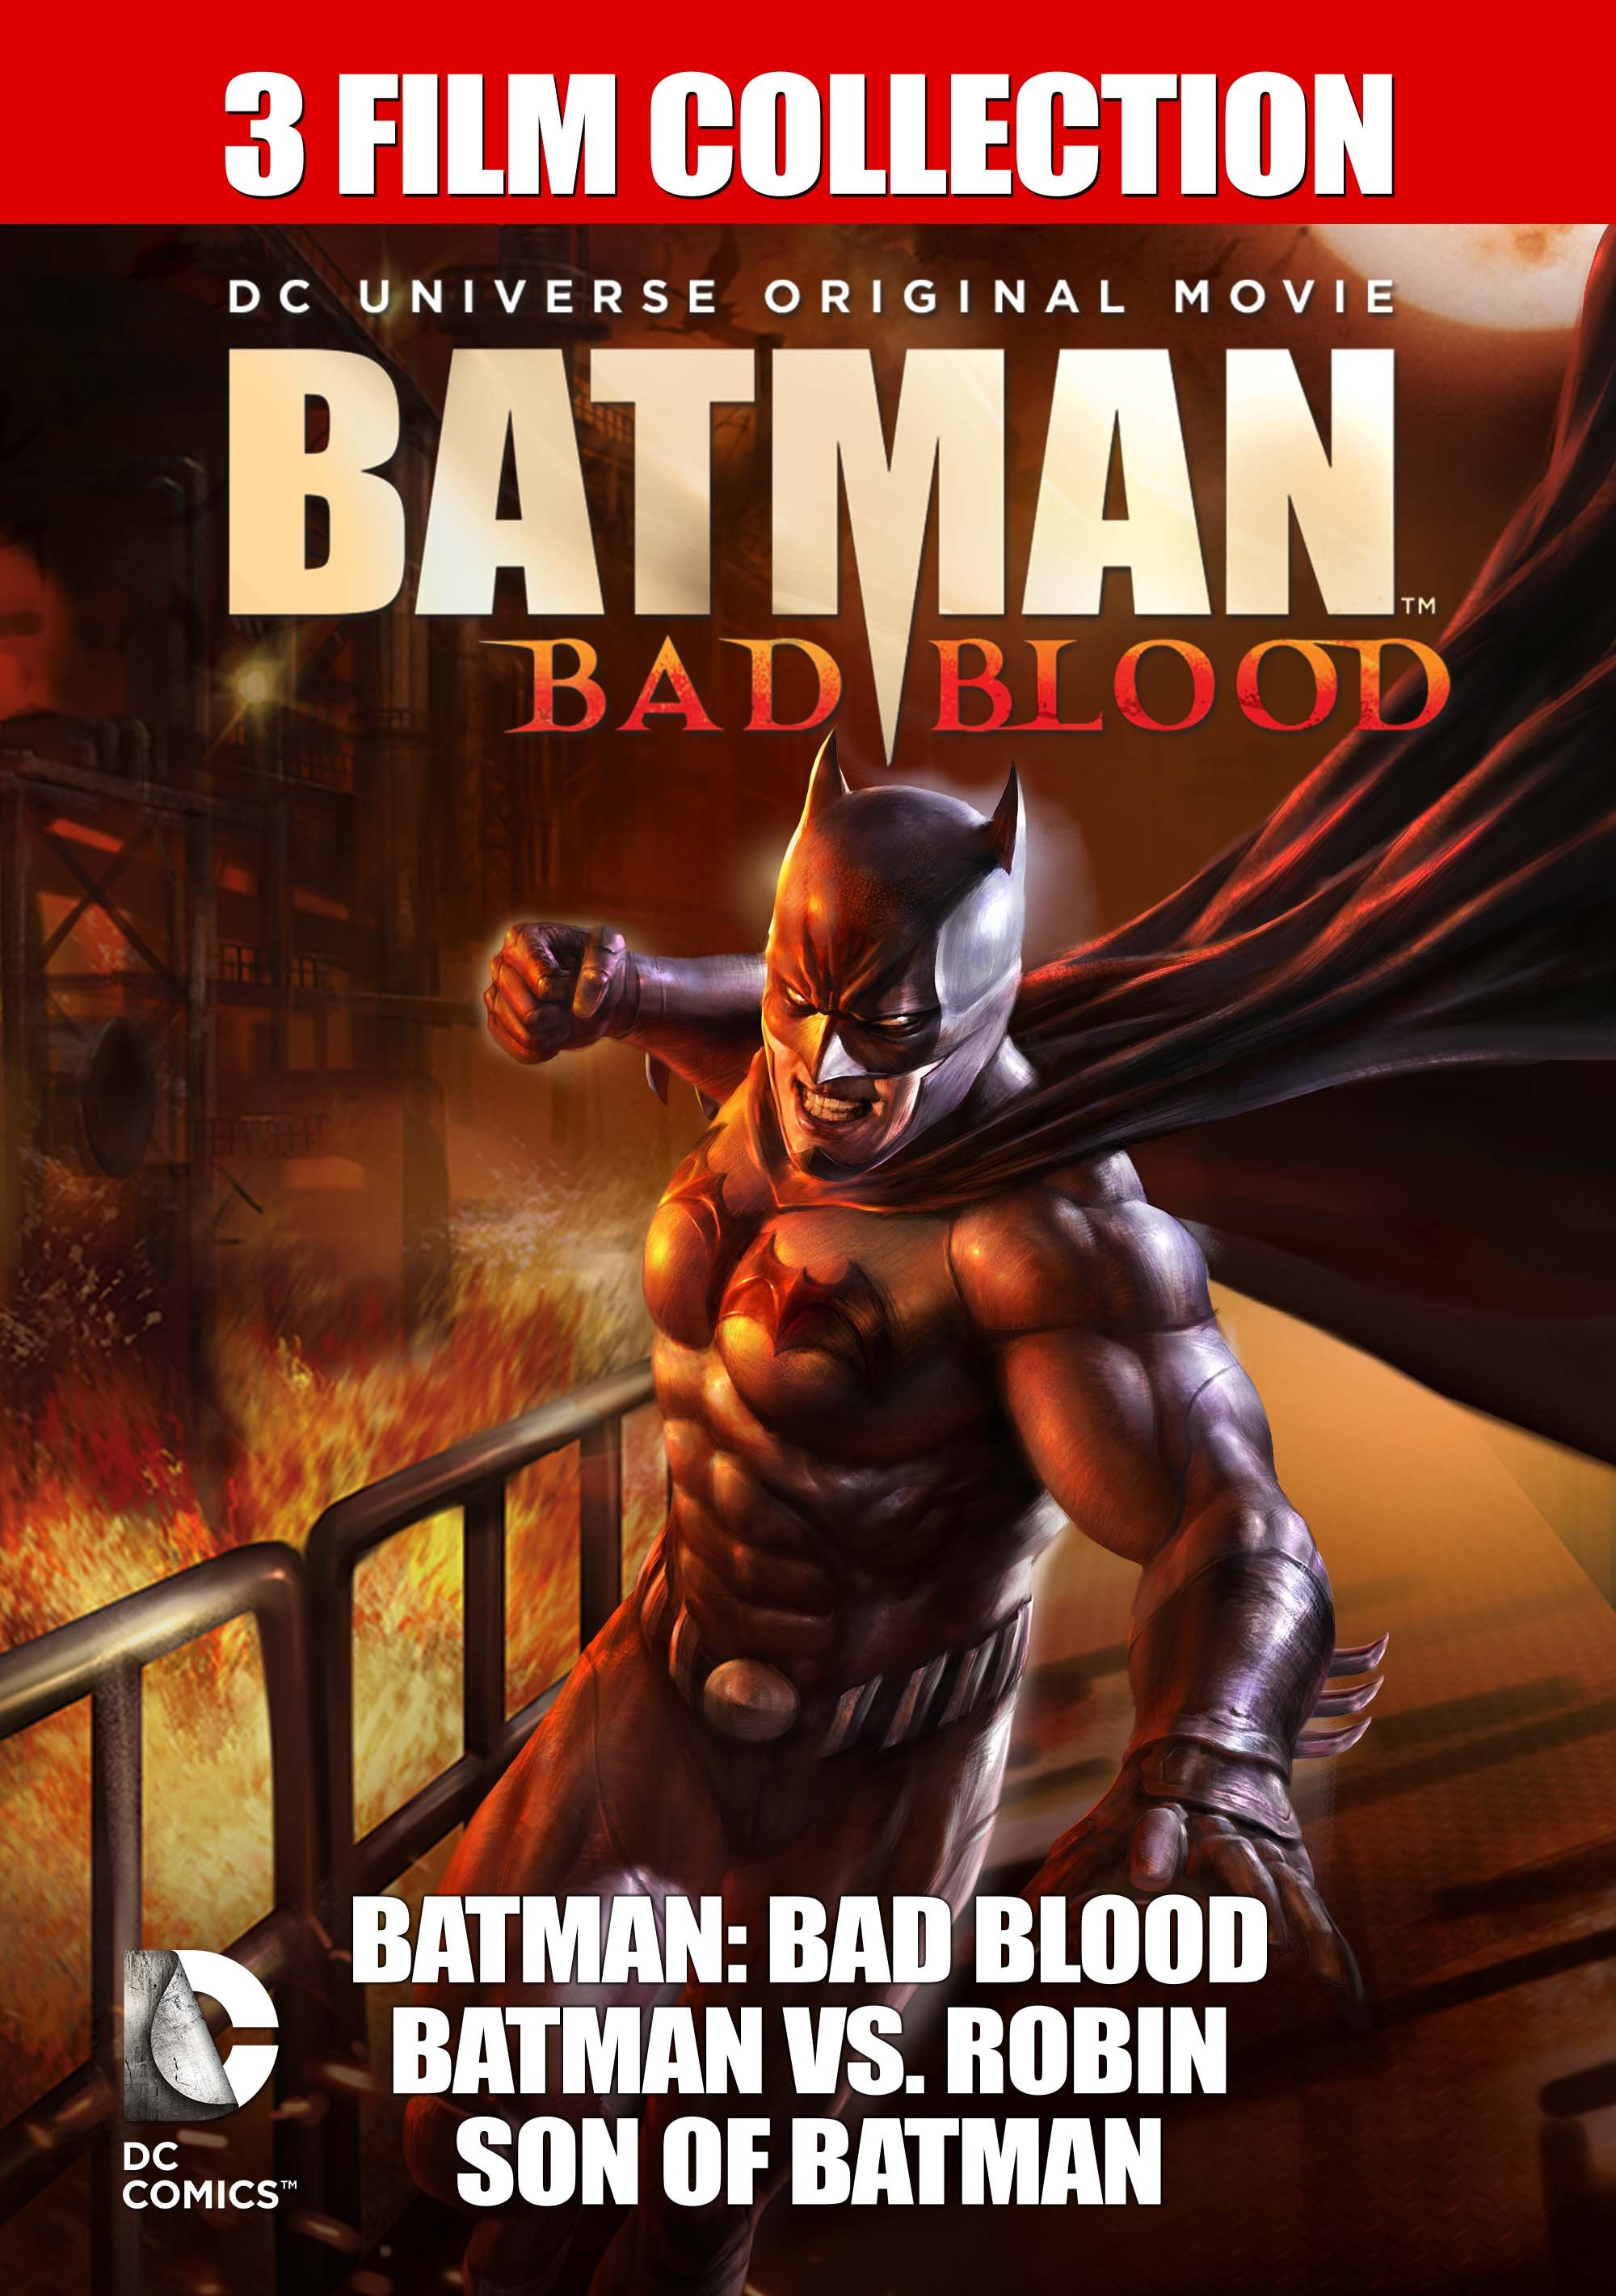 Batman Bad Blood 3-film Collection